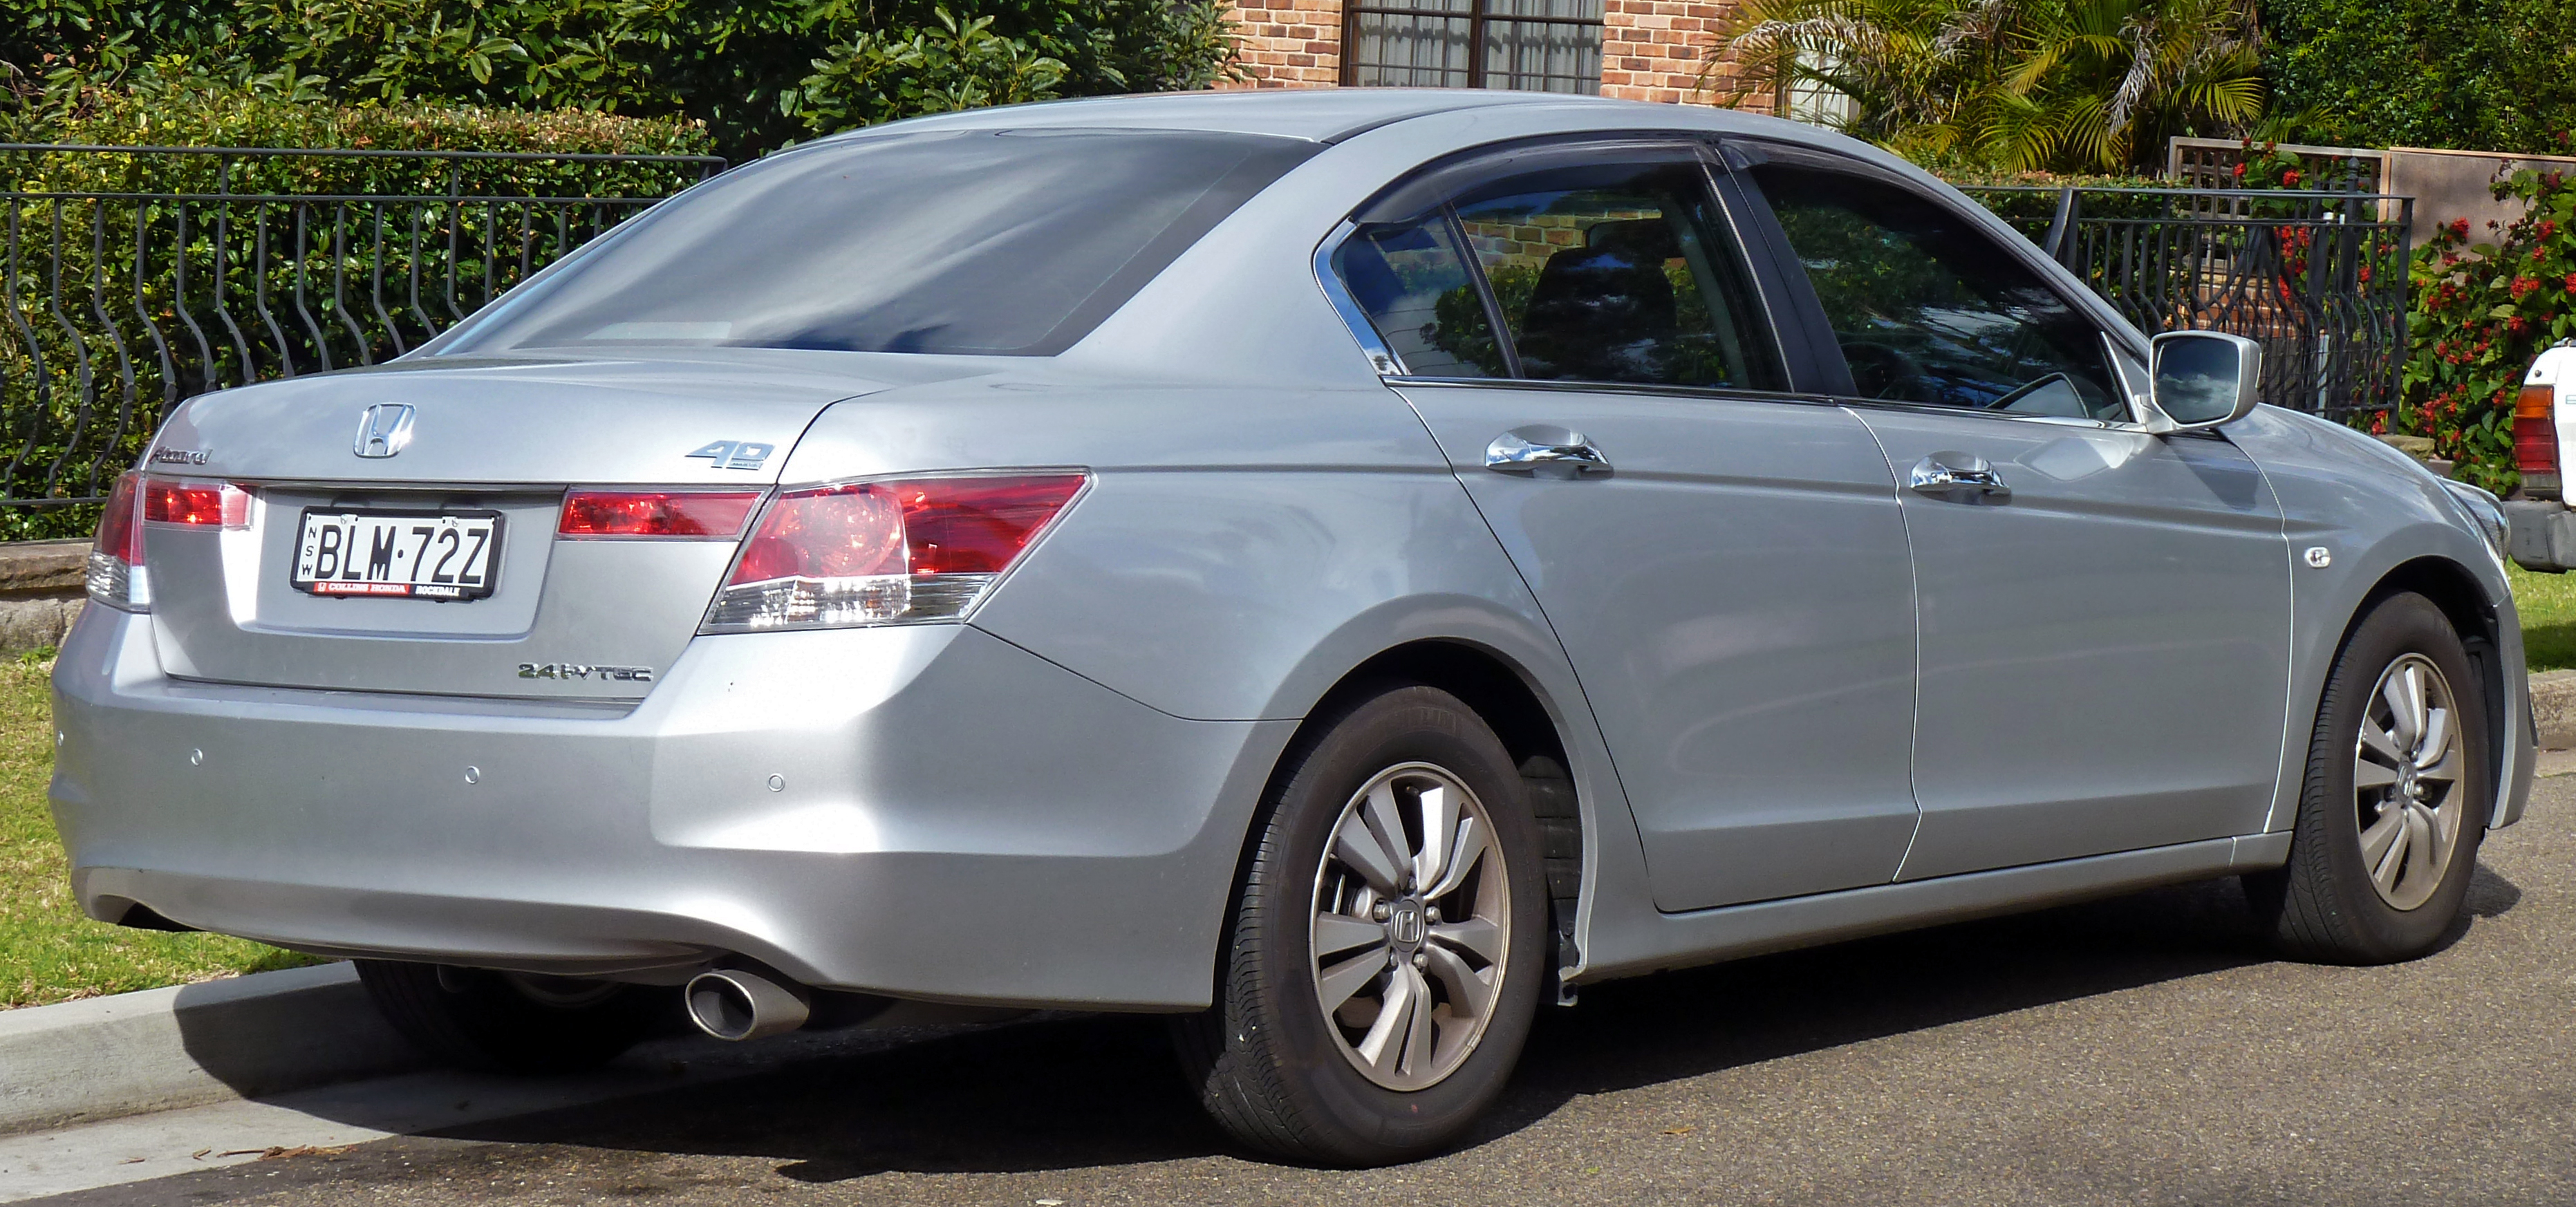 2009 Honda Accord #2